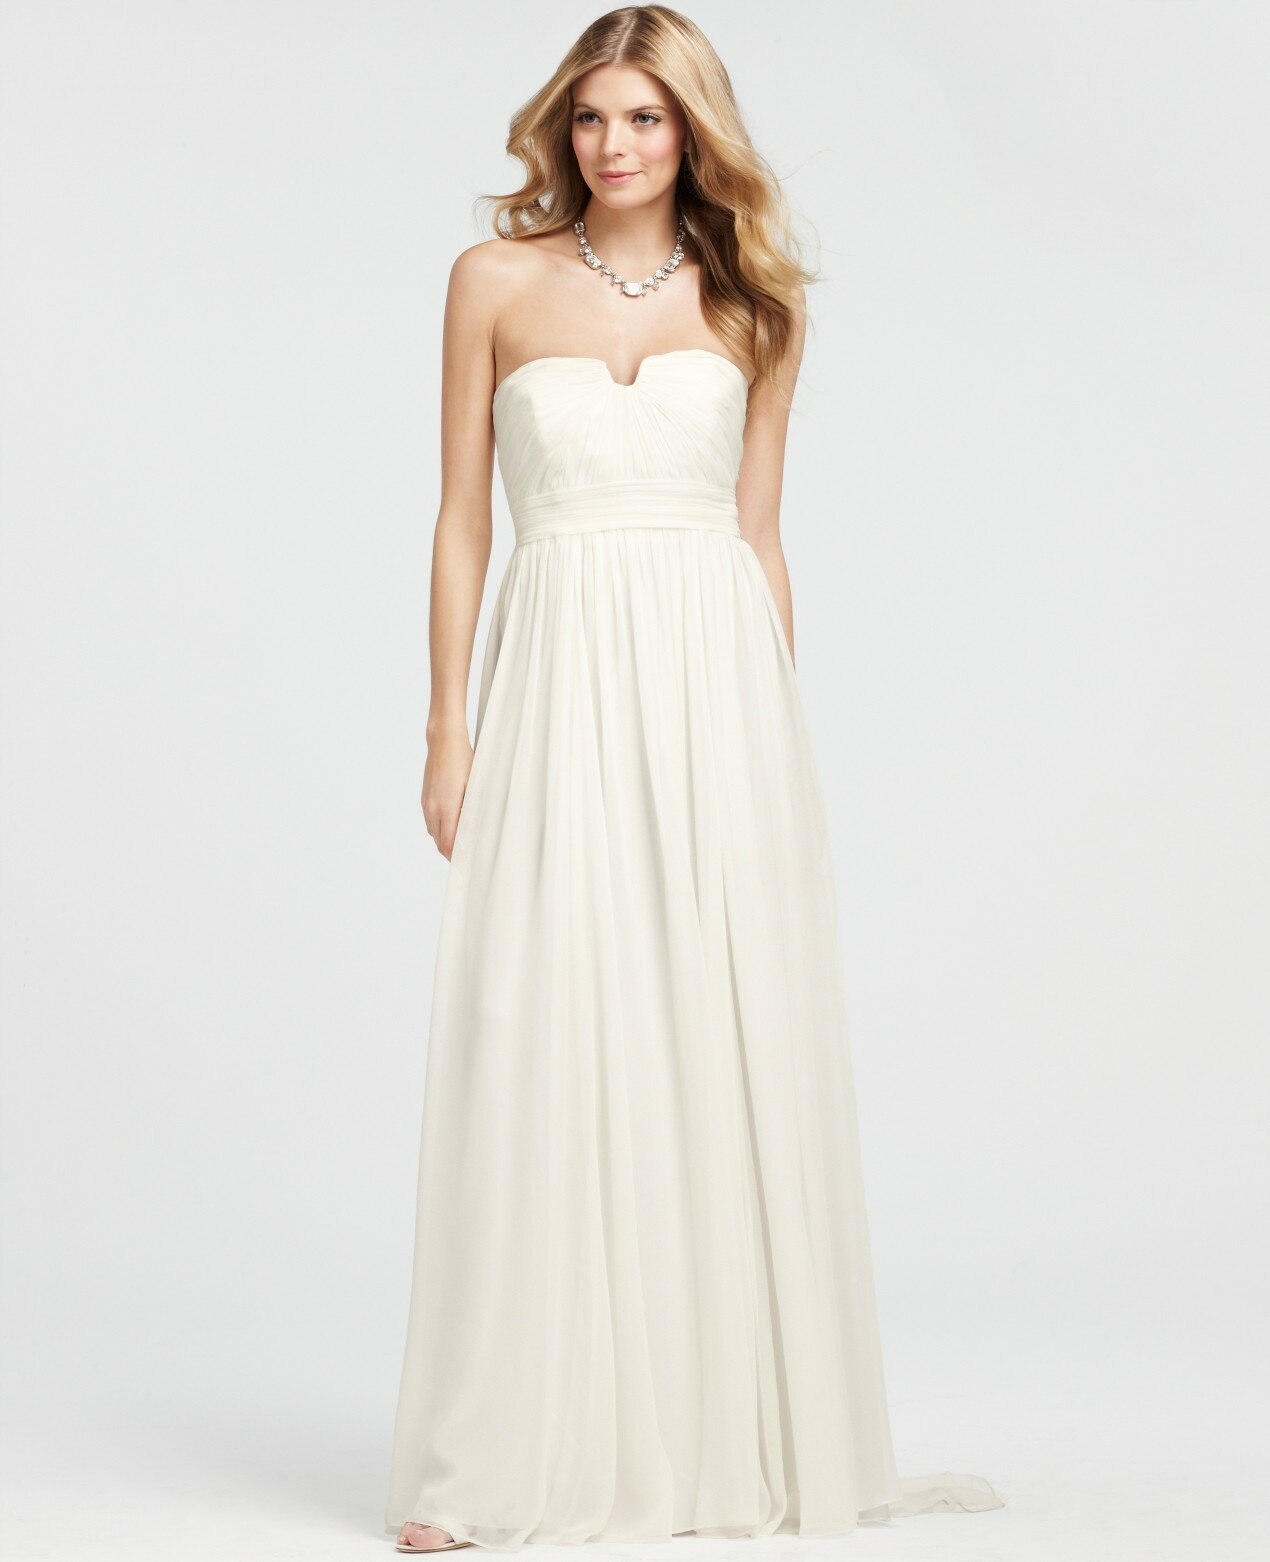 Ann taylor wedding dresses pictures ideas guide to buying change your style look for something new for yourselves ann taylor wedding dresses photo 1 ann taylor ombrellifo Images